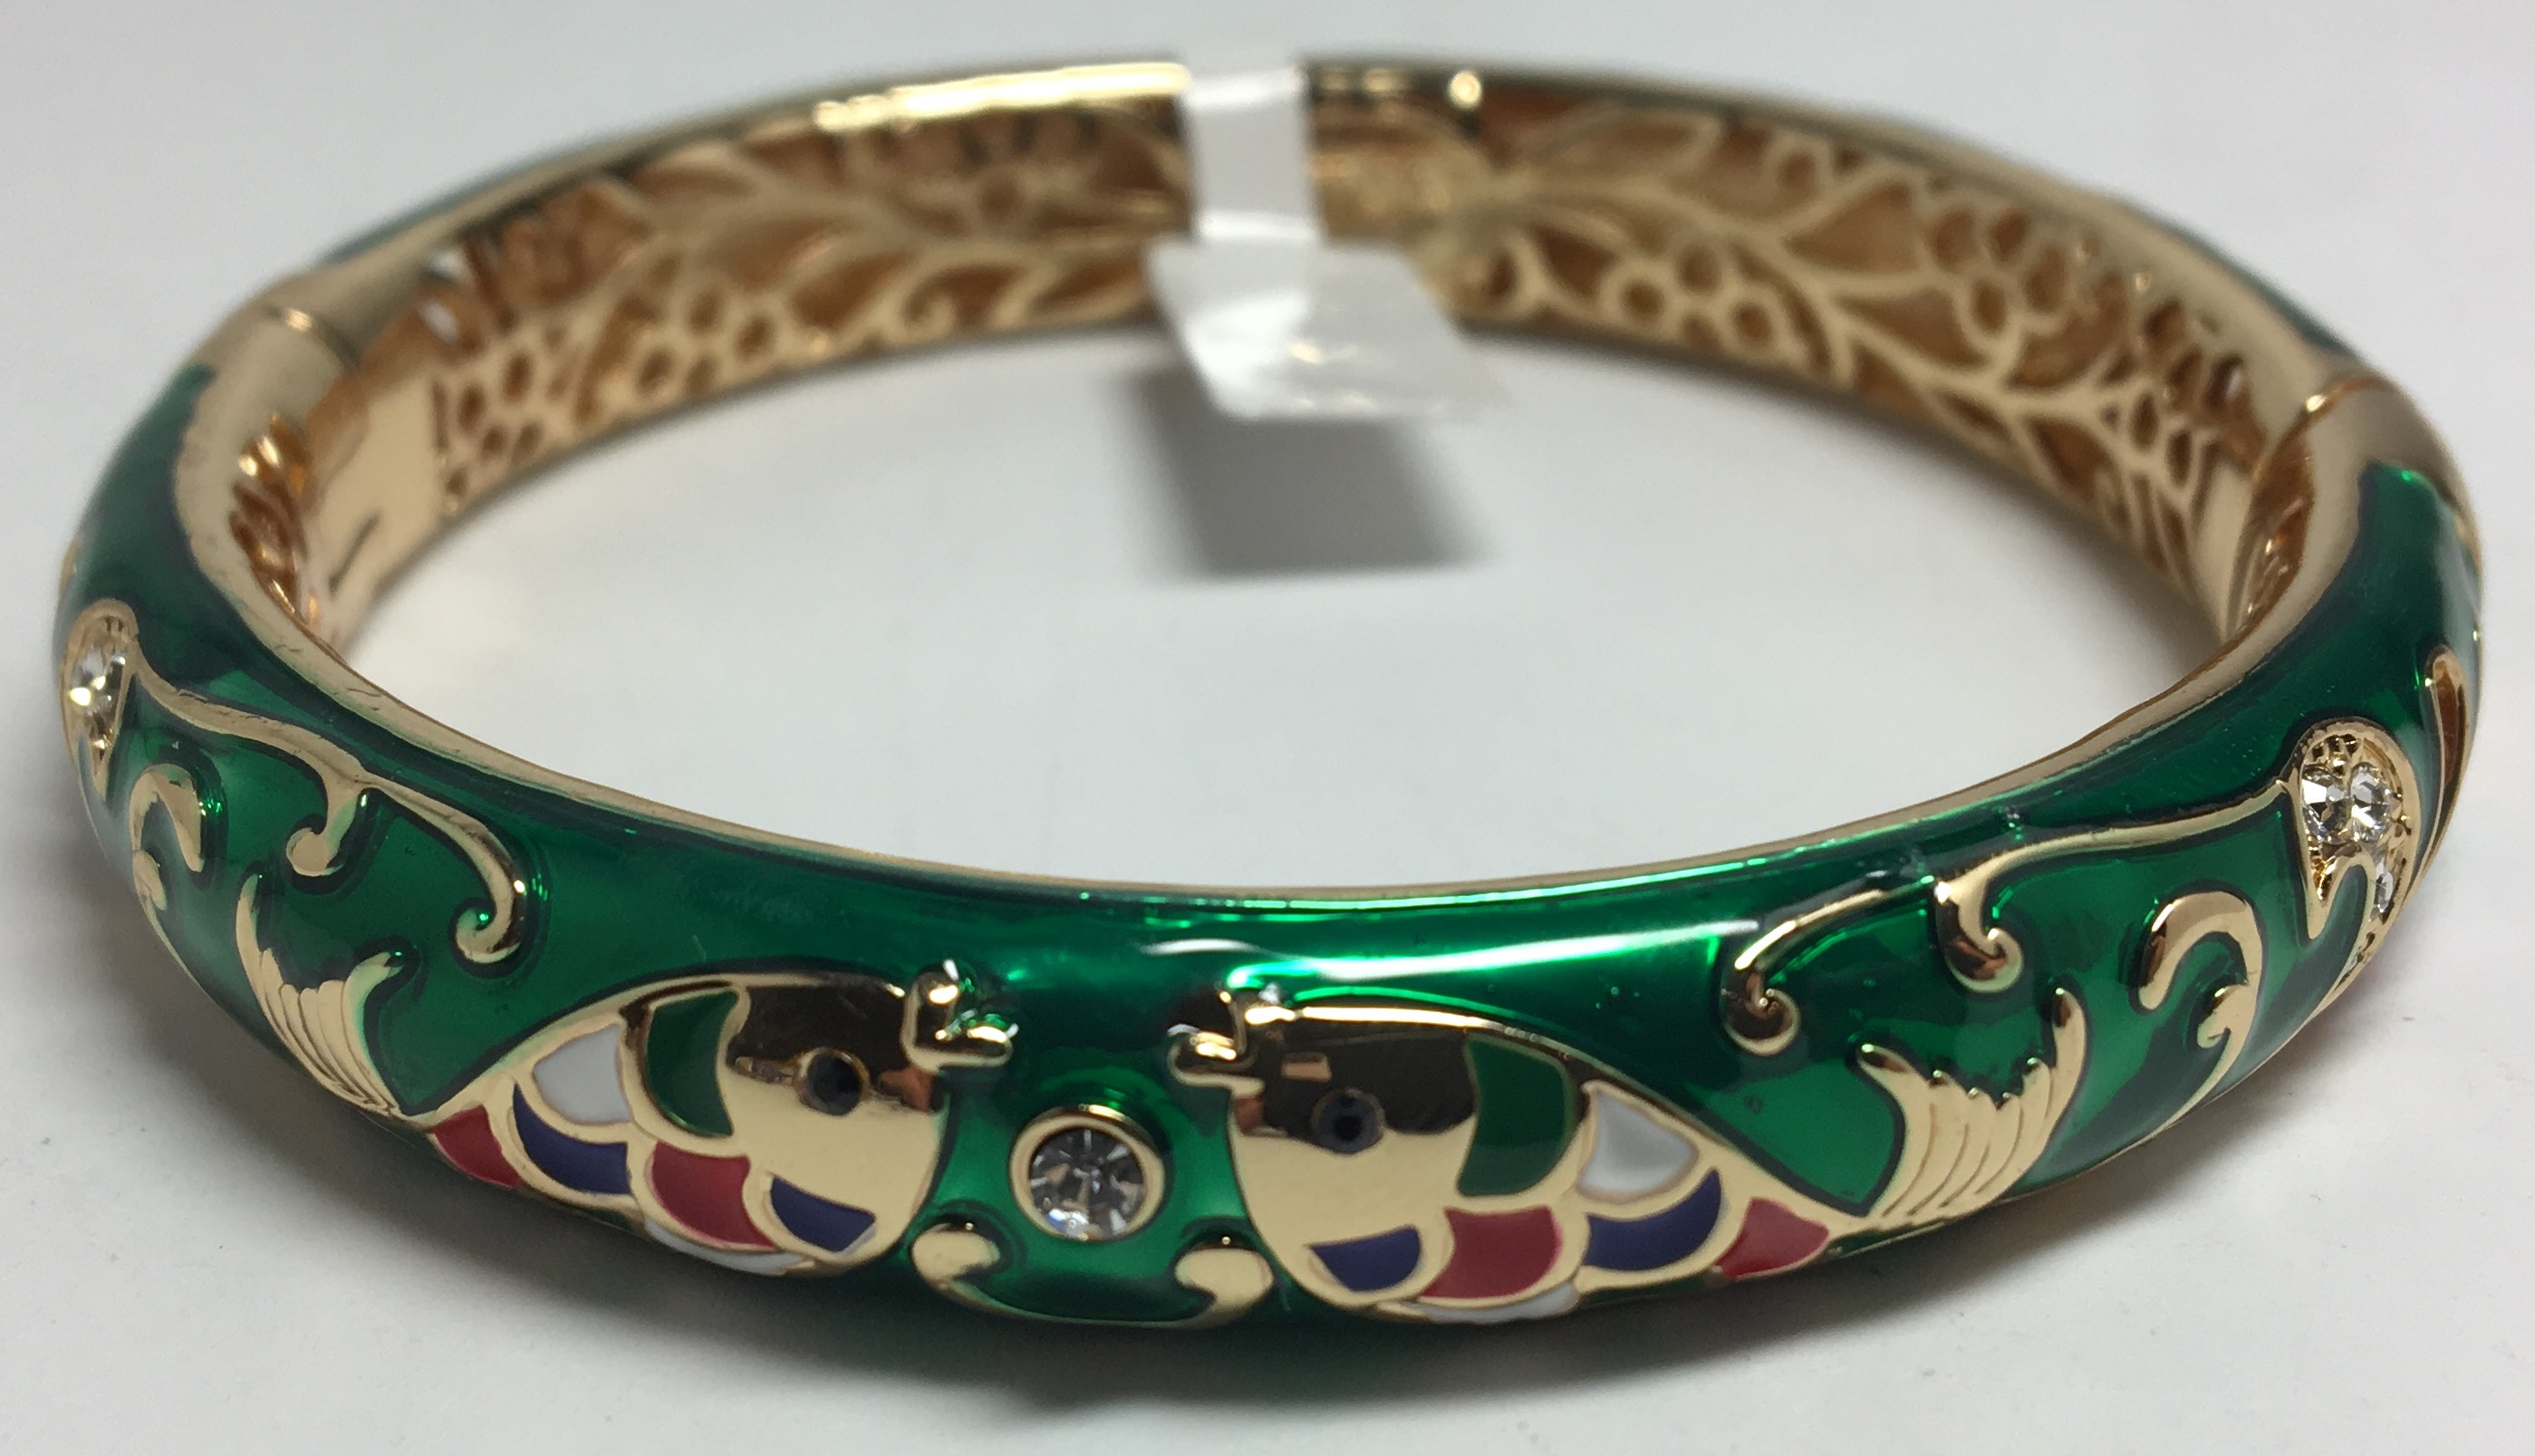 Fish Green Bracelet with Enamel (by AKM Gifts)